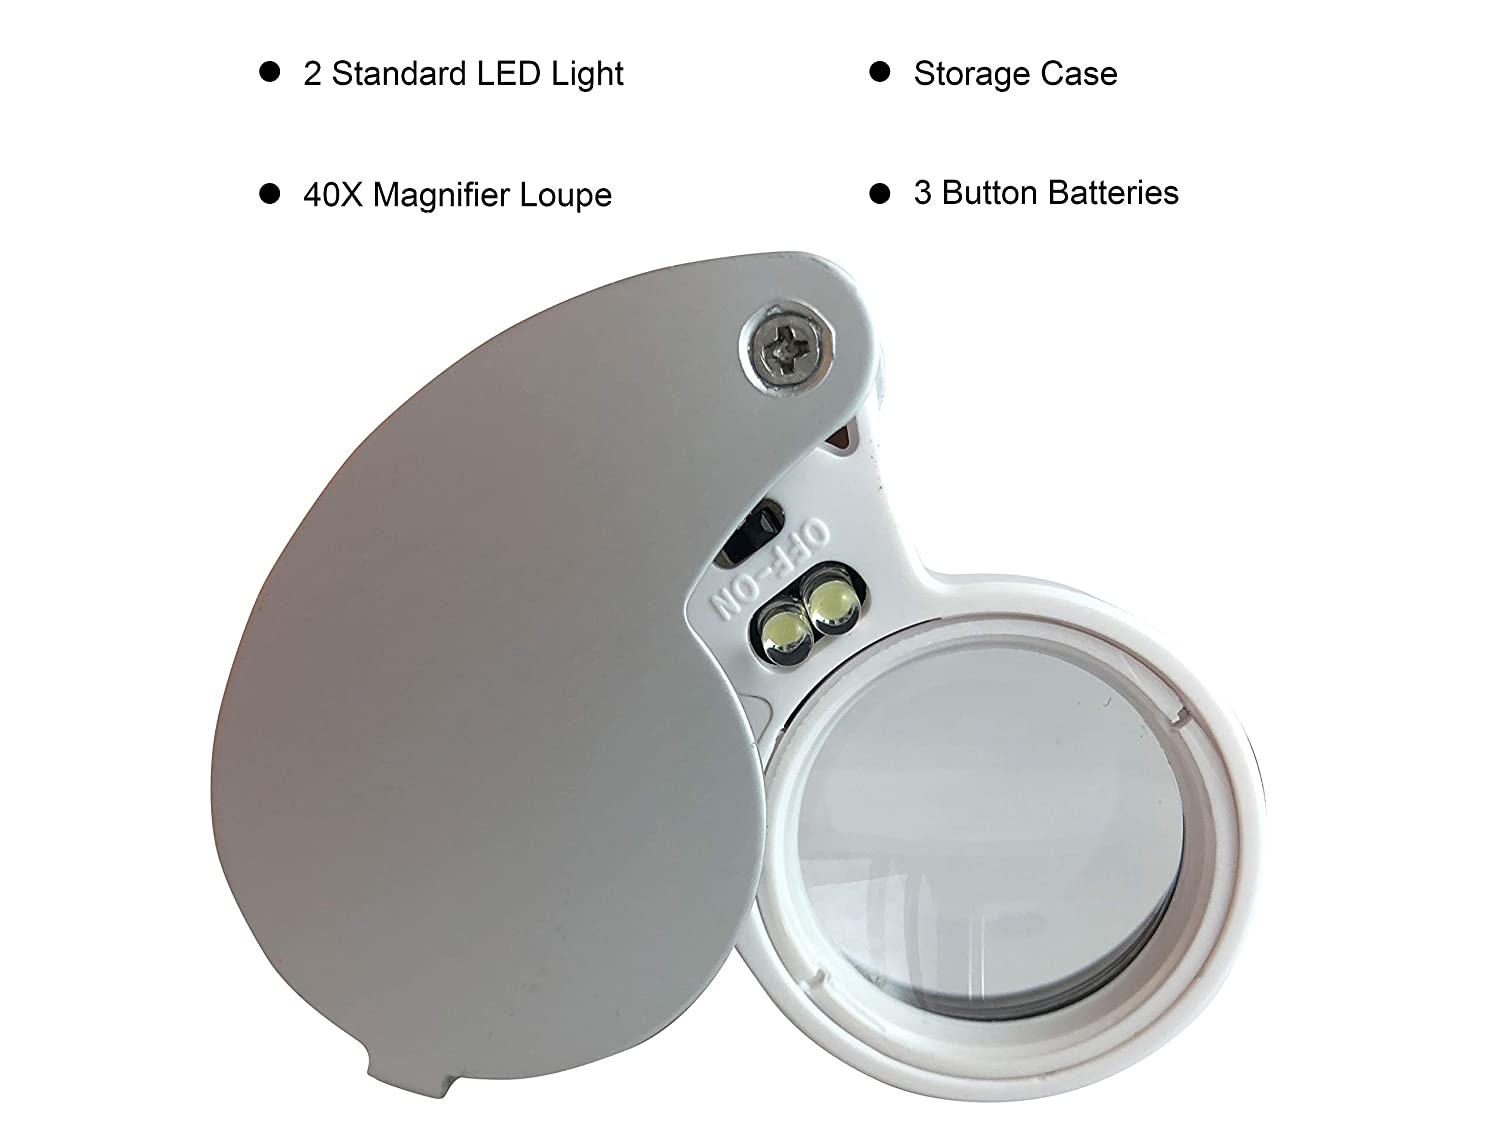 Rocks Silver//White 40X LED Illuminated Jewelers Loupe//Trichome Scope by Sticky Thumbs Pocket Folding Magnifier Loop Good for Jewelry Minerals Antiques and Plants Cleaning Cloth